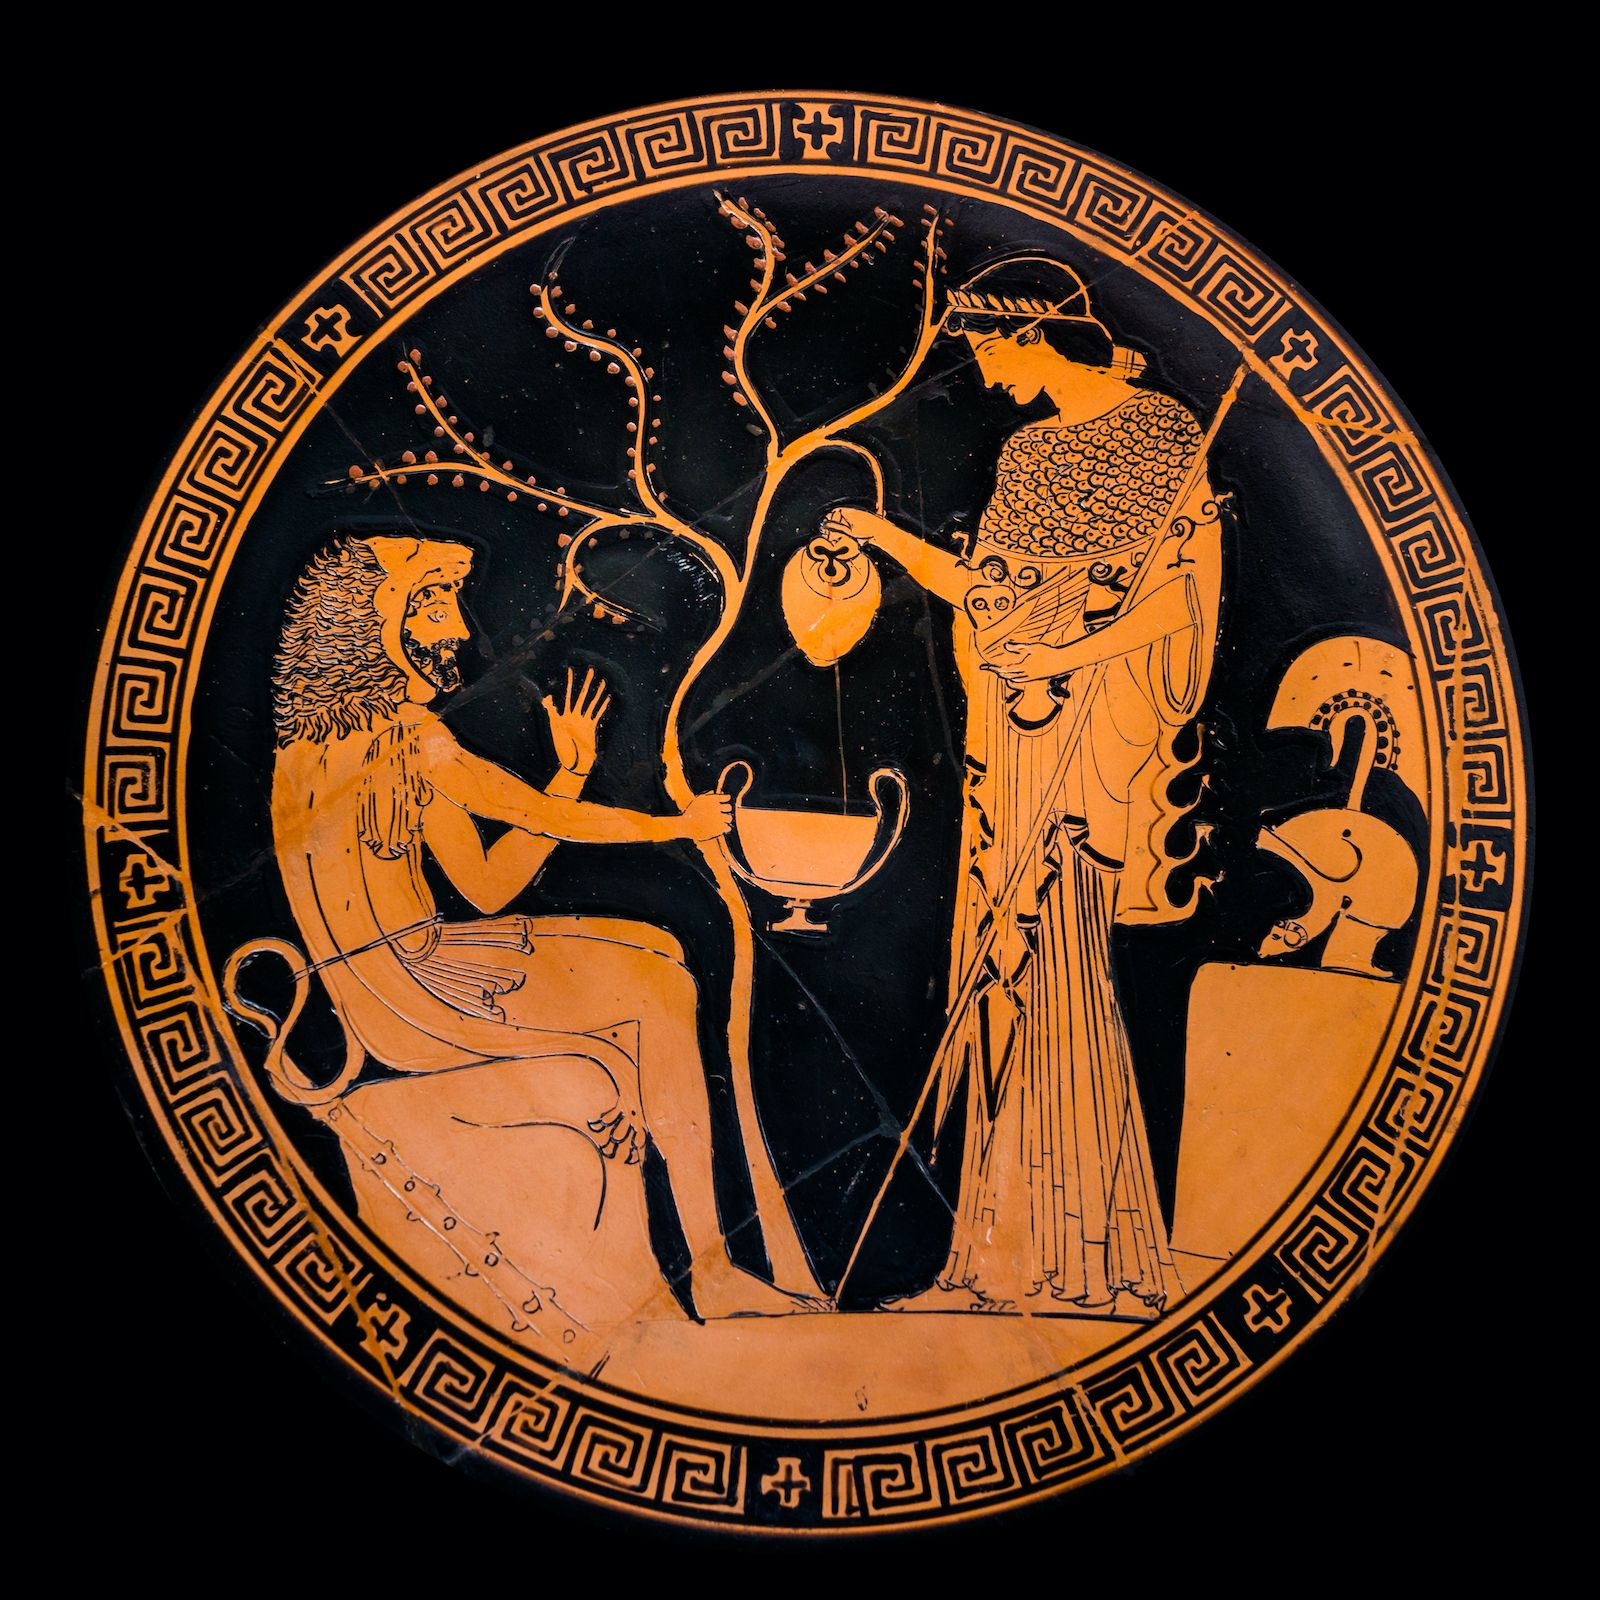 Ancient greek pottery with image of Athena